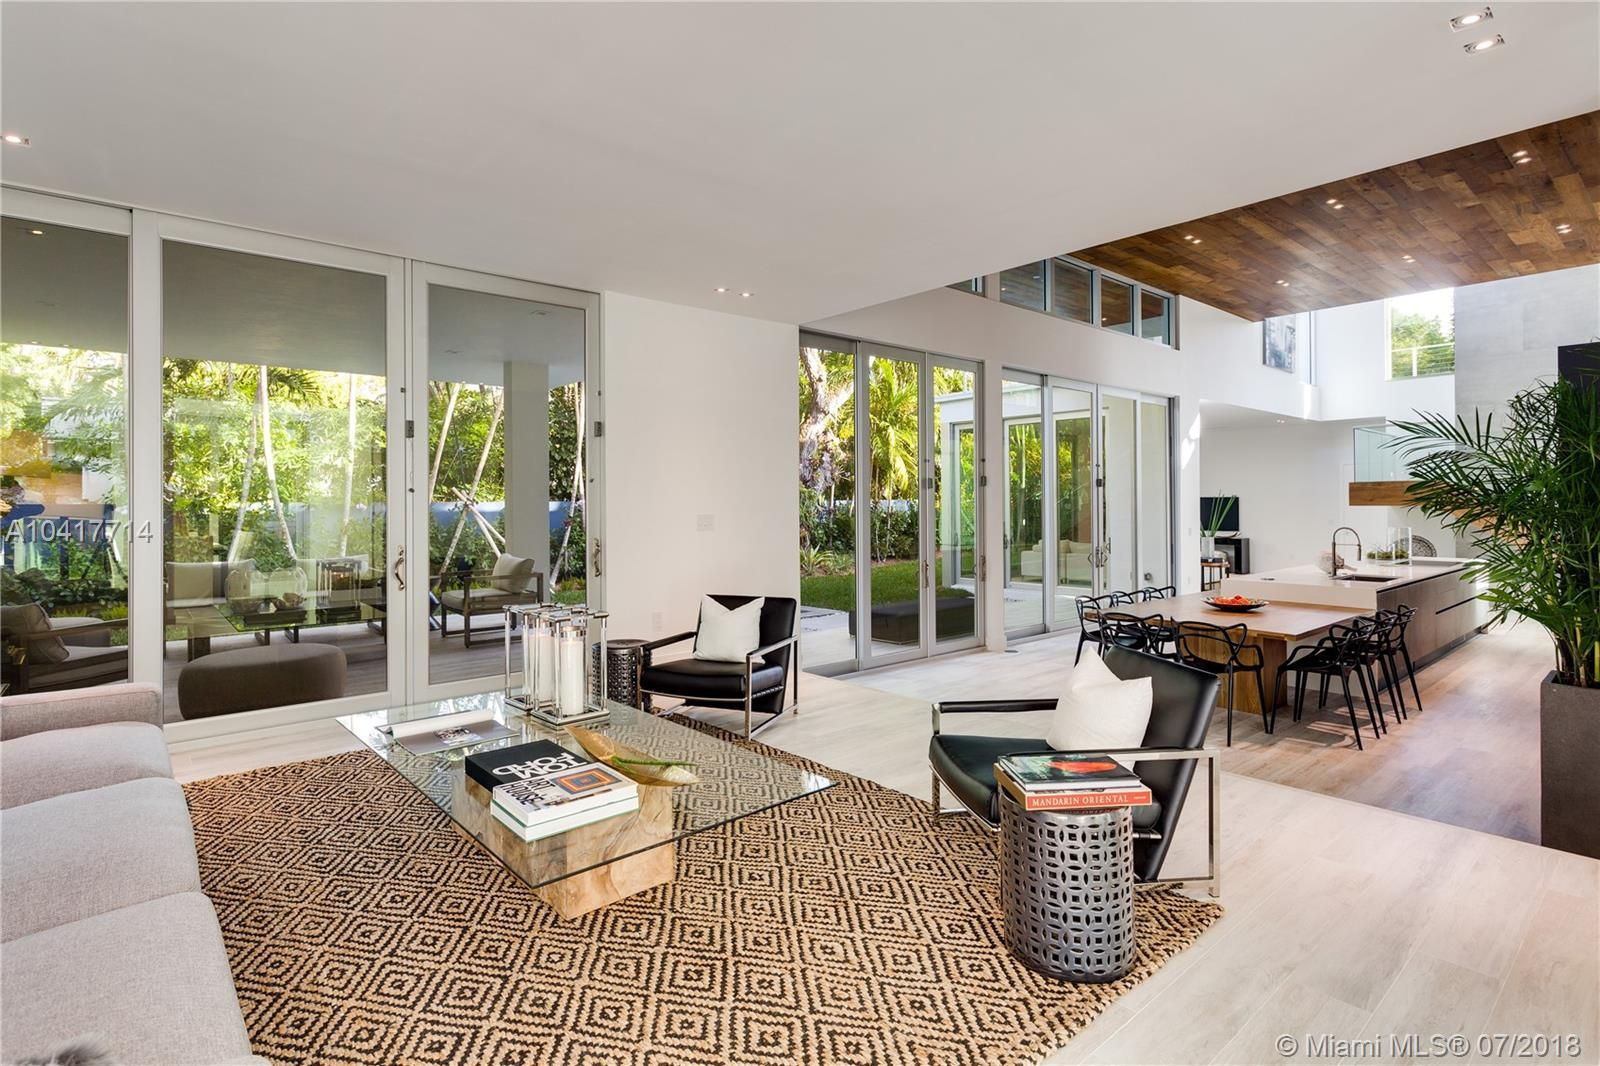 Home Decor Inspiration at this Coconut Grove home for sale in